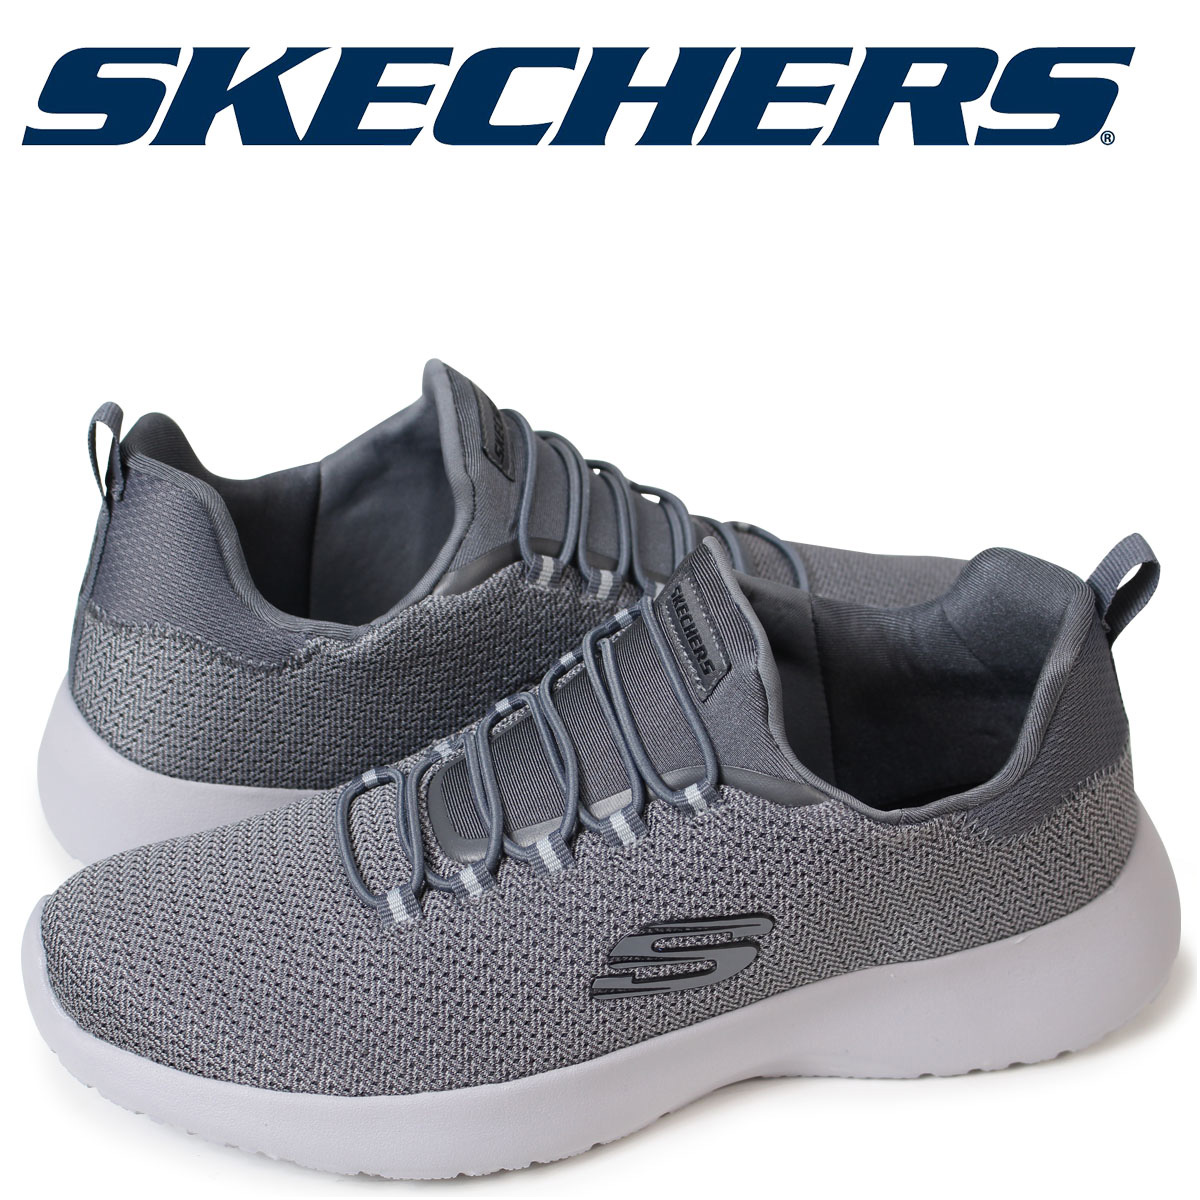 SKECHERS dynamite men sneakers